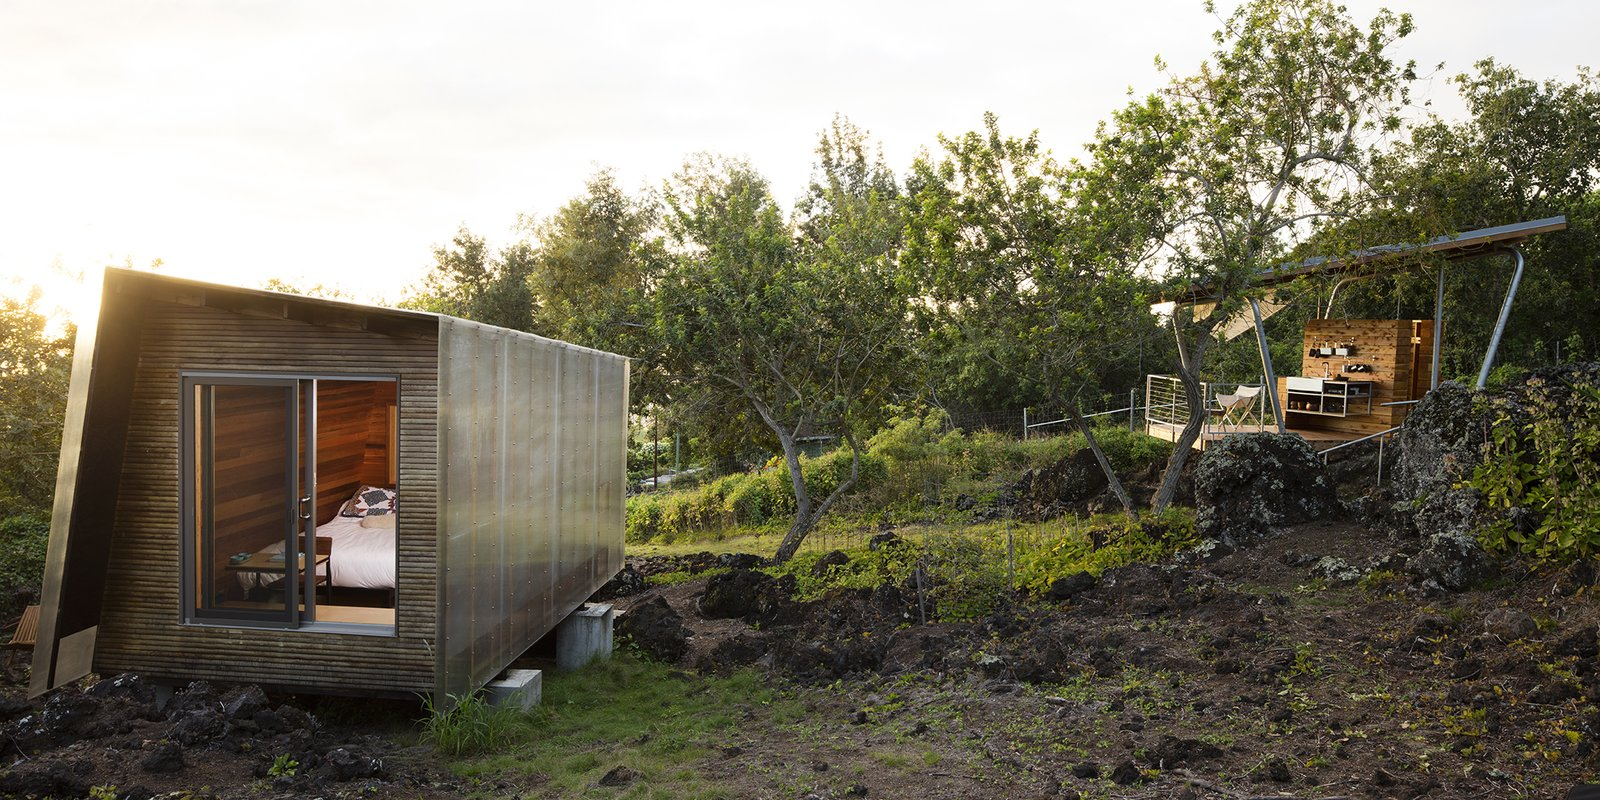 Shed & Studio and Living Space Room Type Maui, Hawaii Dwell Magazine : September / October 2017  Photo 1 of 9 in Two Tiny Pavilions Respectfully Perch Atop a Lava Flow on Maui